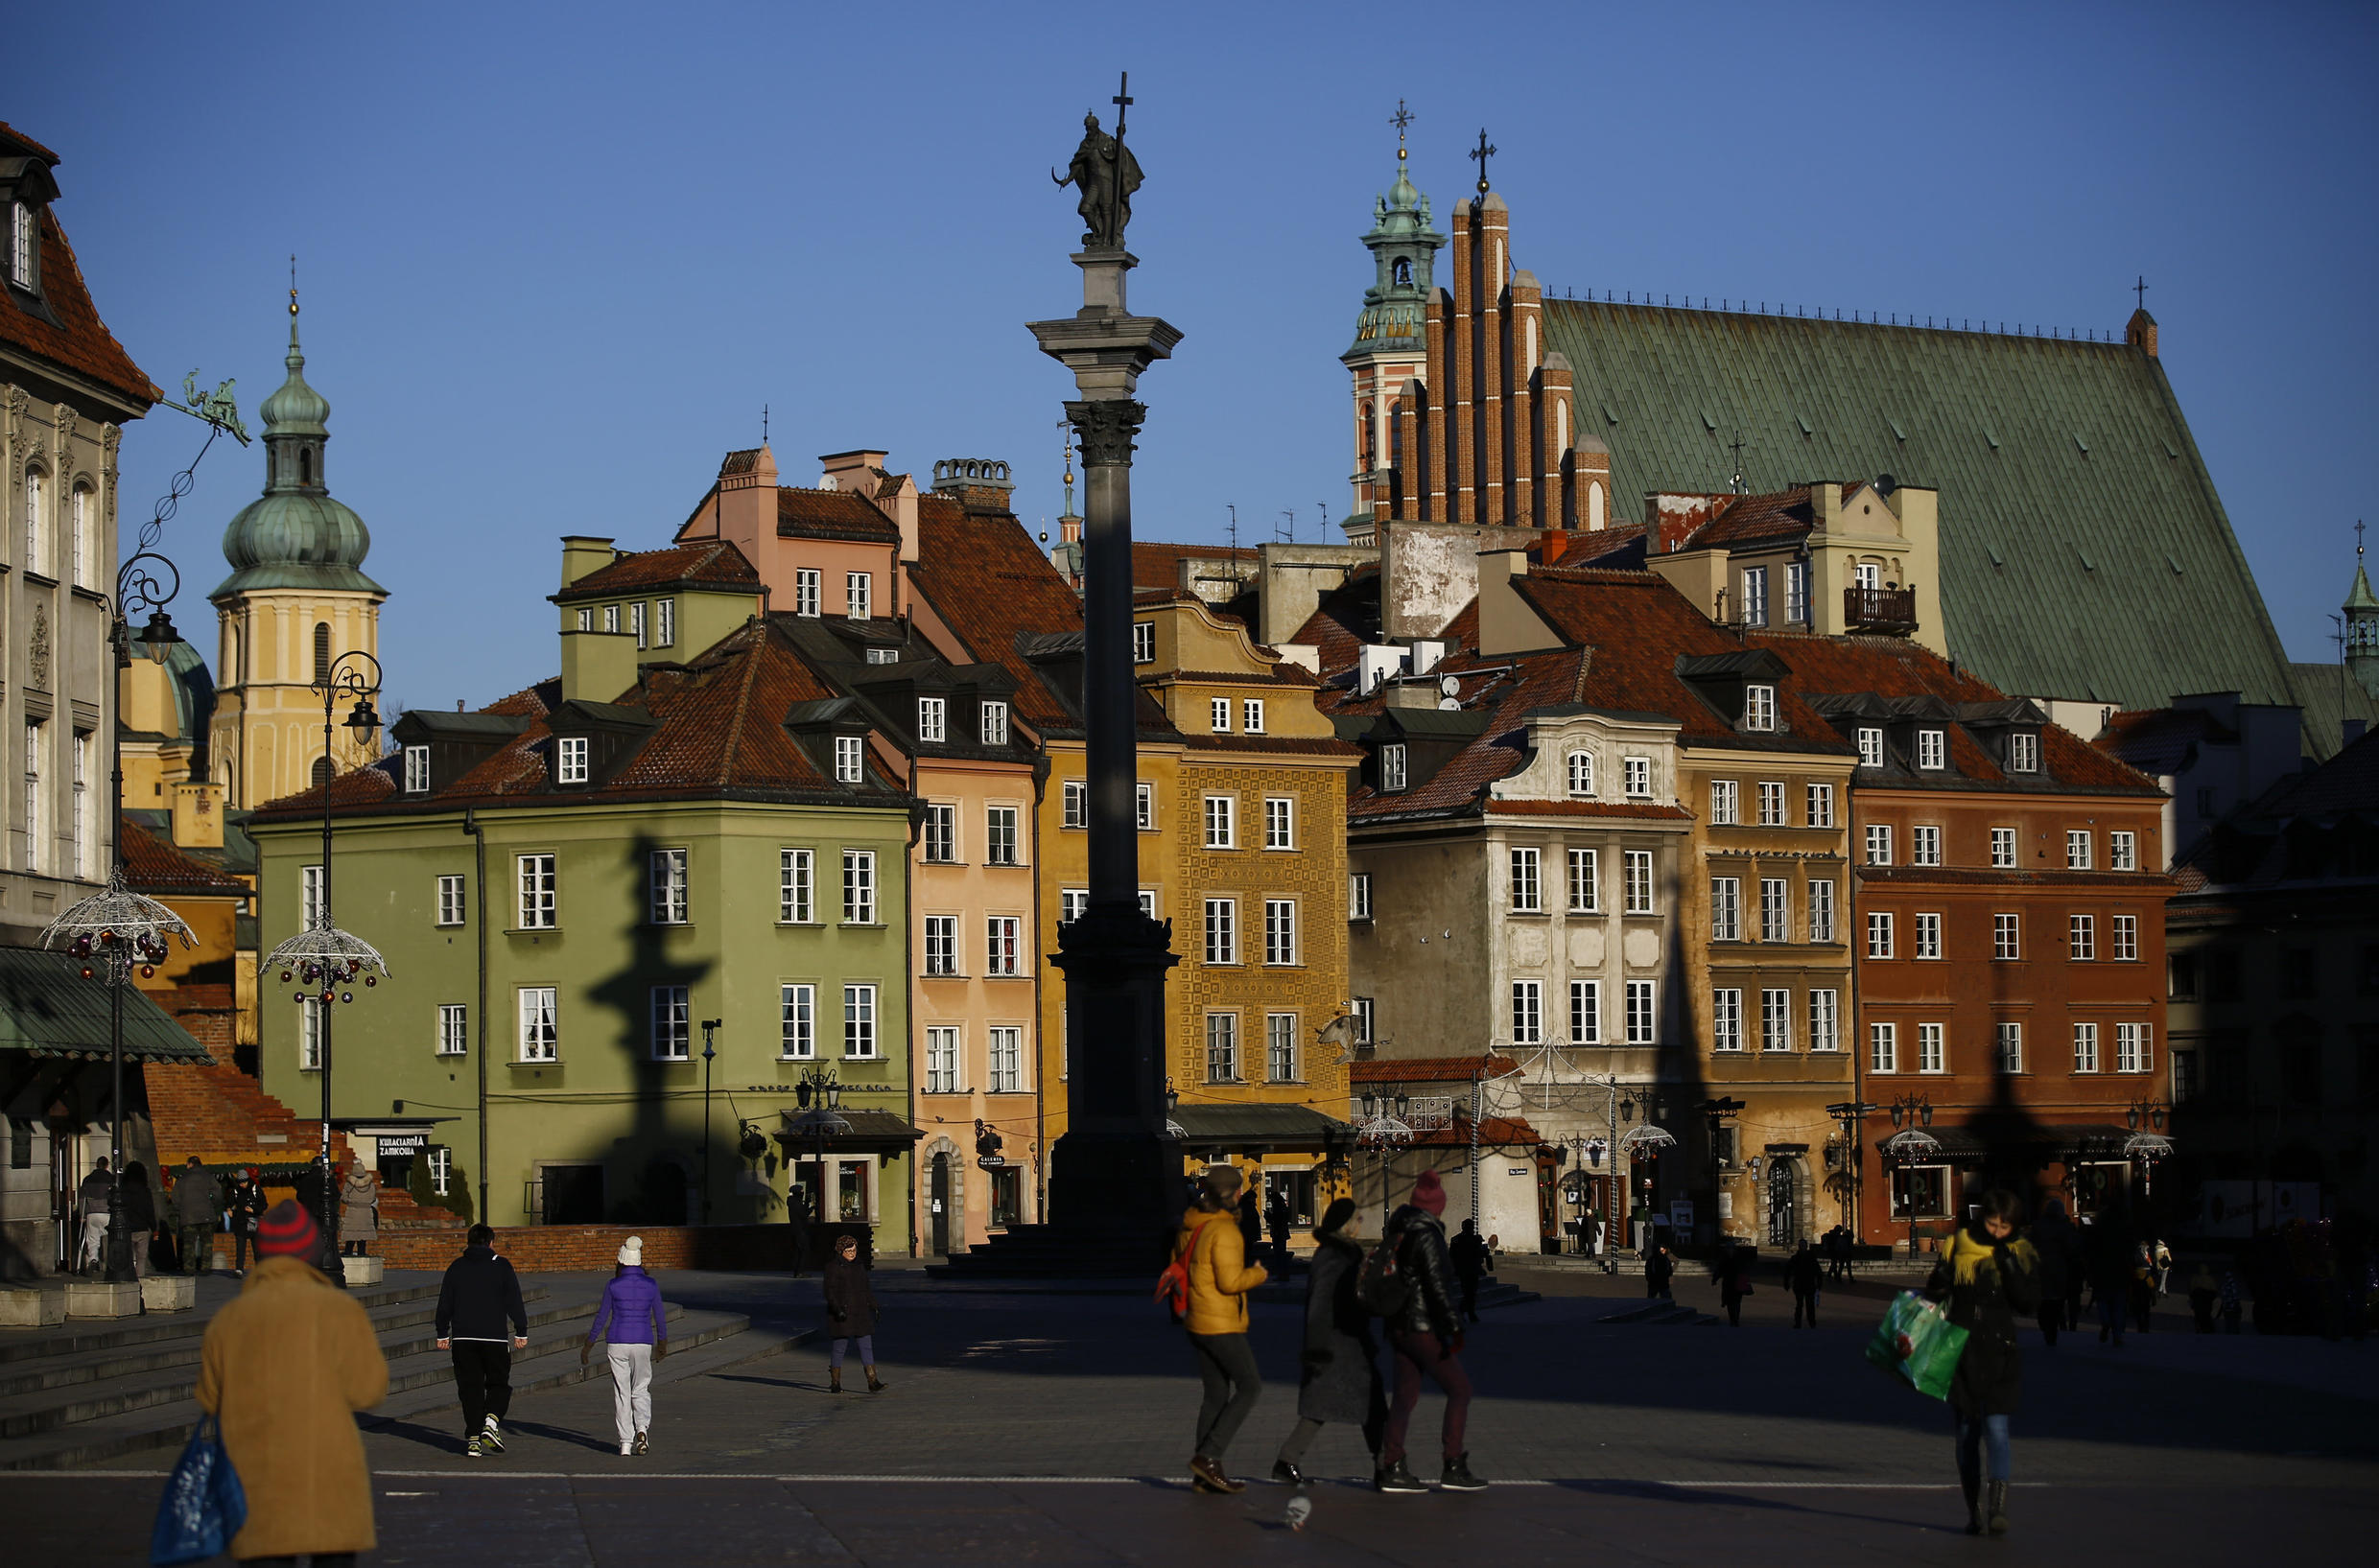 The Old Town in front of the Sigismund's Column in Warsaw, Poland.